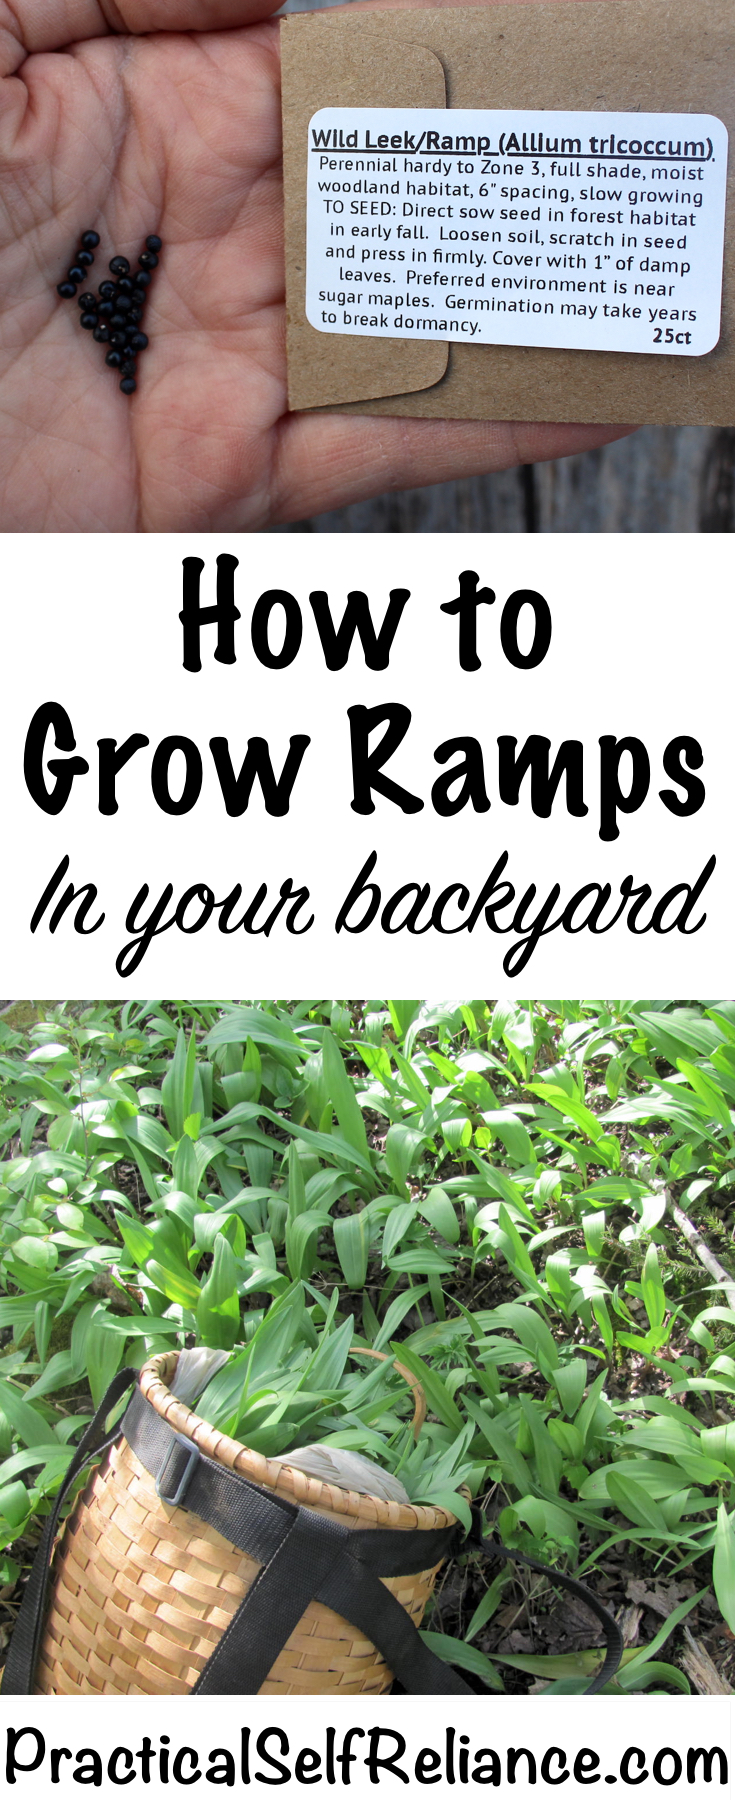 How to Grow Ramps in Your Backyard ~ Grow your own wild leeks #ramps #wildramps #foraging #wildfood #forage #selfsufficiency #wildcrafting #wildleeks #gardening #organicgardening #howtogrow #vegetablegardening #gardeningtips #homesteading #homestead #selfreliant